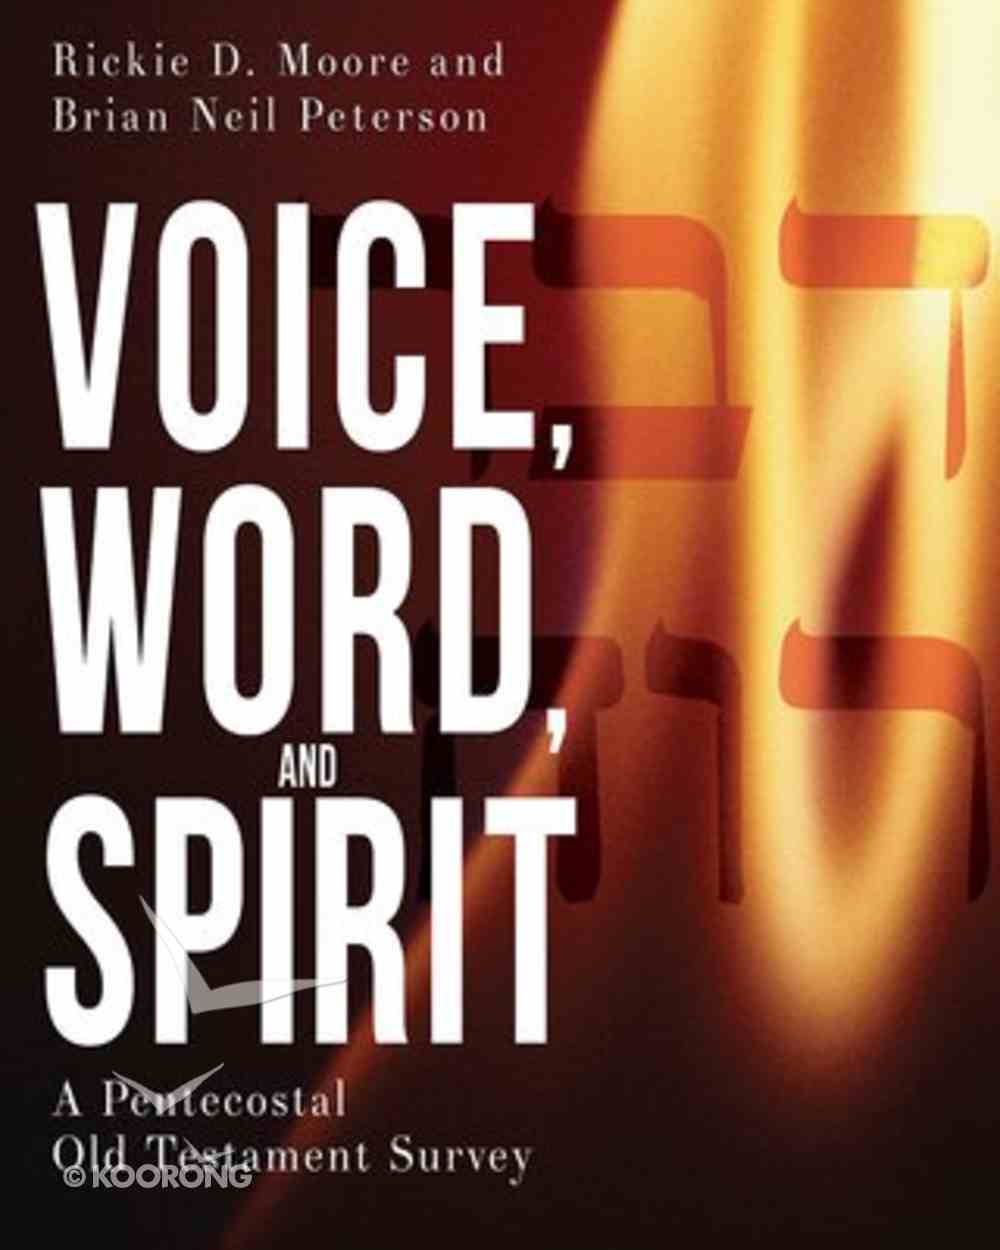 Voice, Word, and Spirit: A Pentecostal Old Testament Survey Paperback